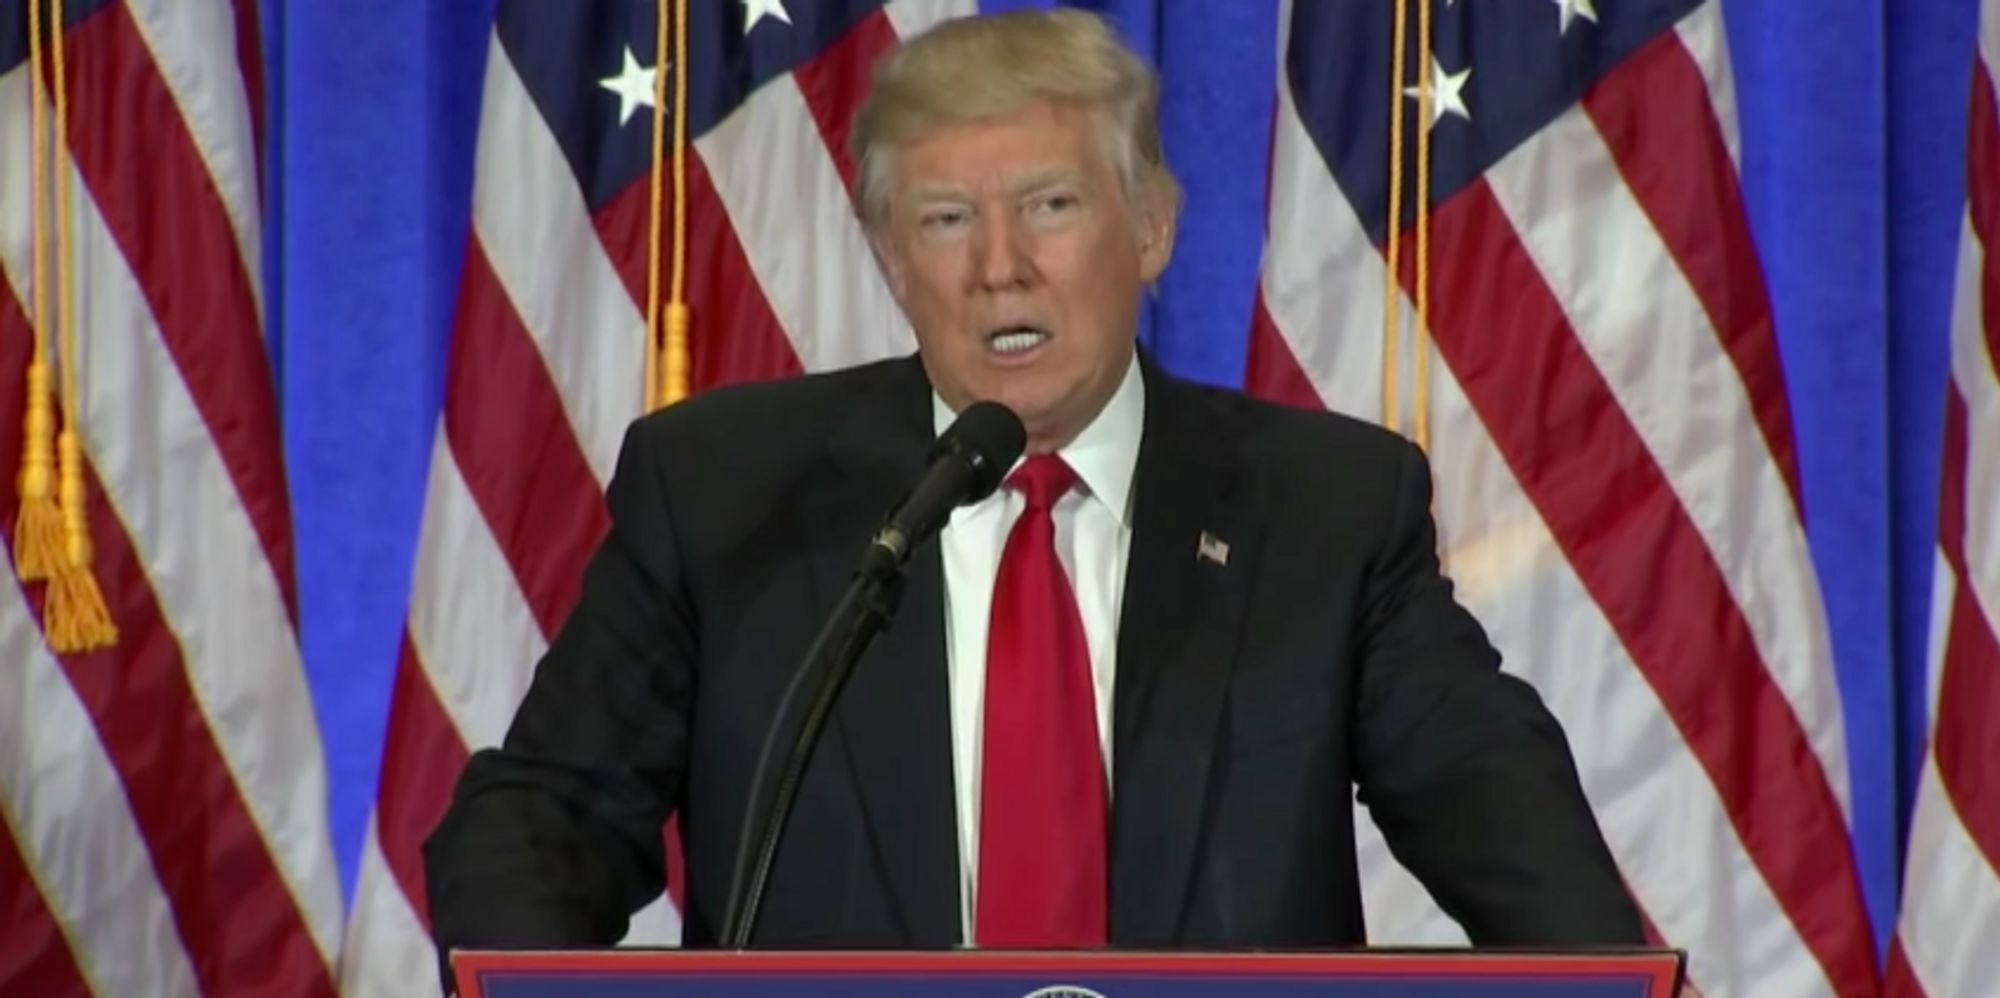 Donald Trump Press Conference Today: President-Elect Suggests Intelligence Agencies Involved In Report Leak